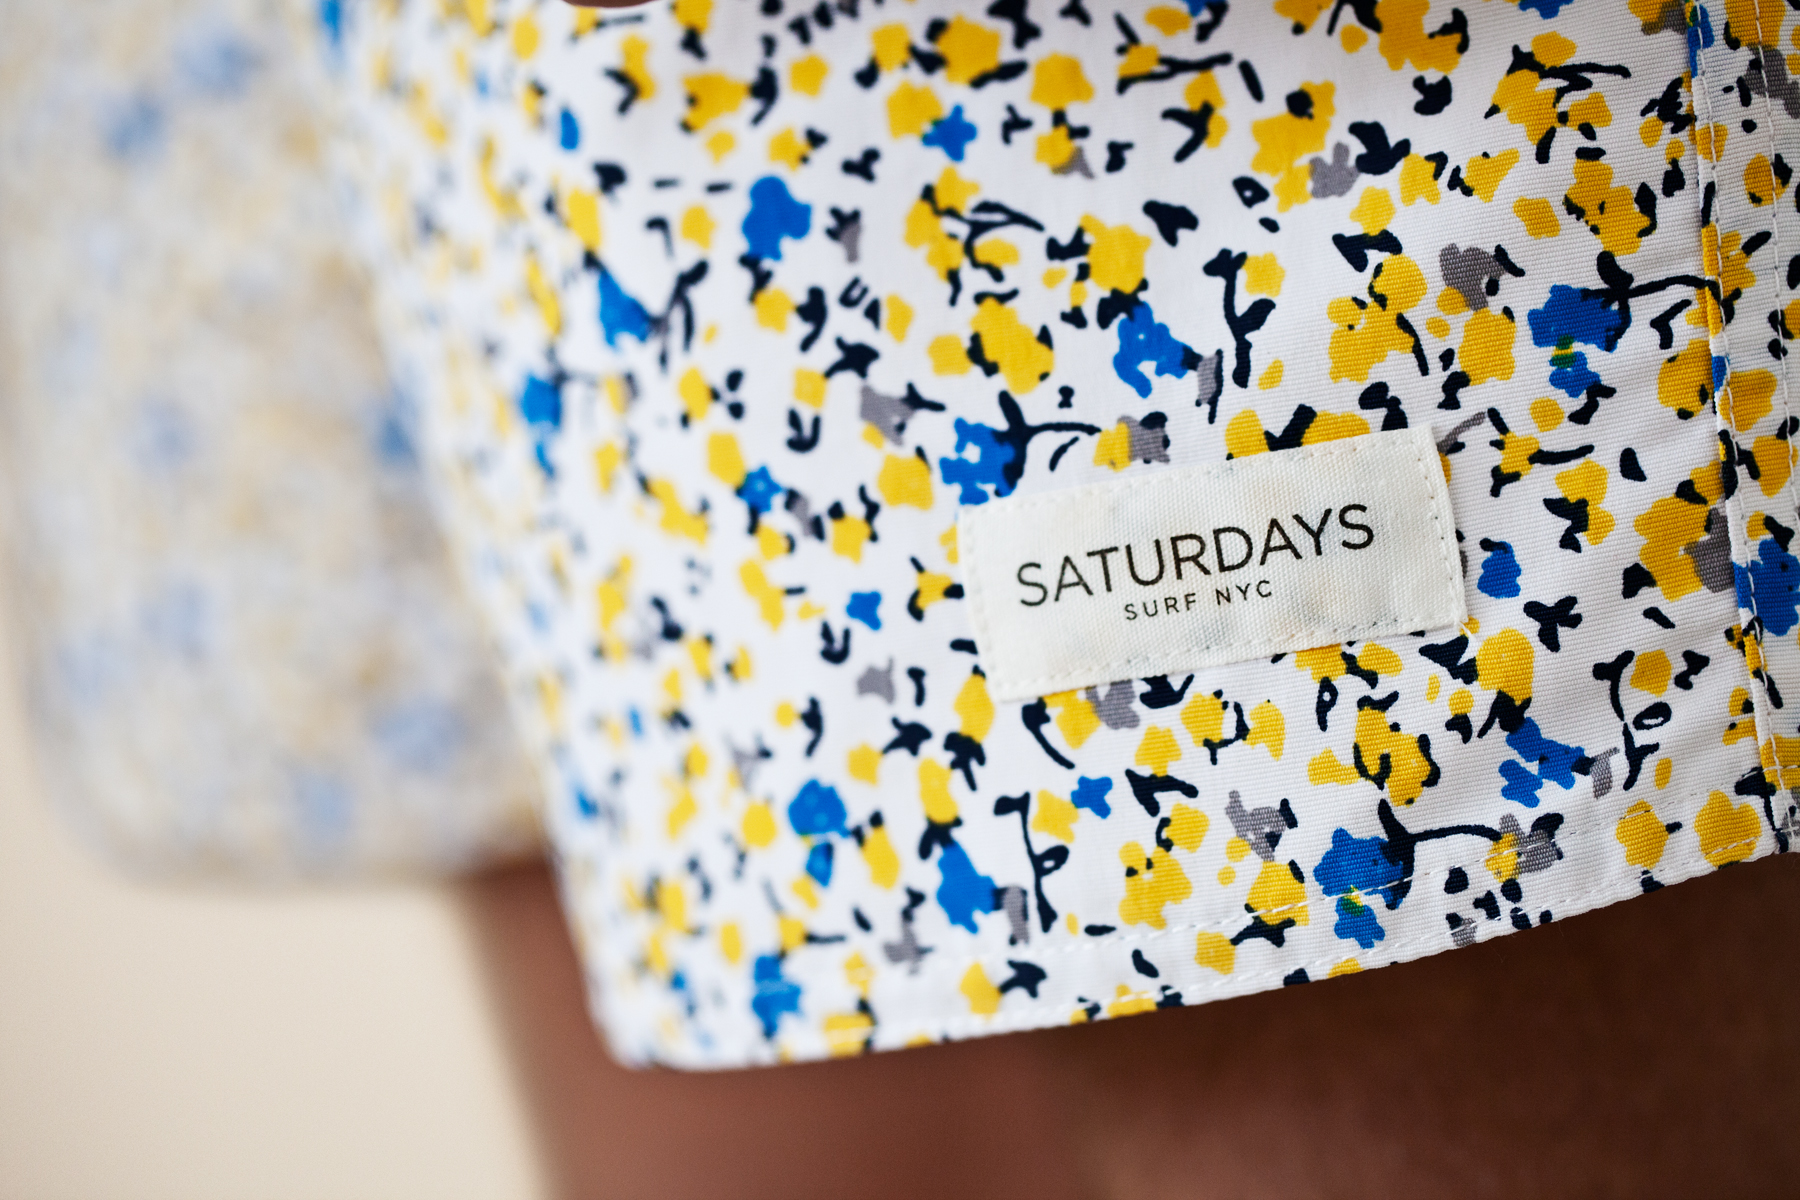 Saturdays Surf NYC 2014 Spring/Summer Collection